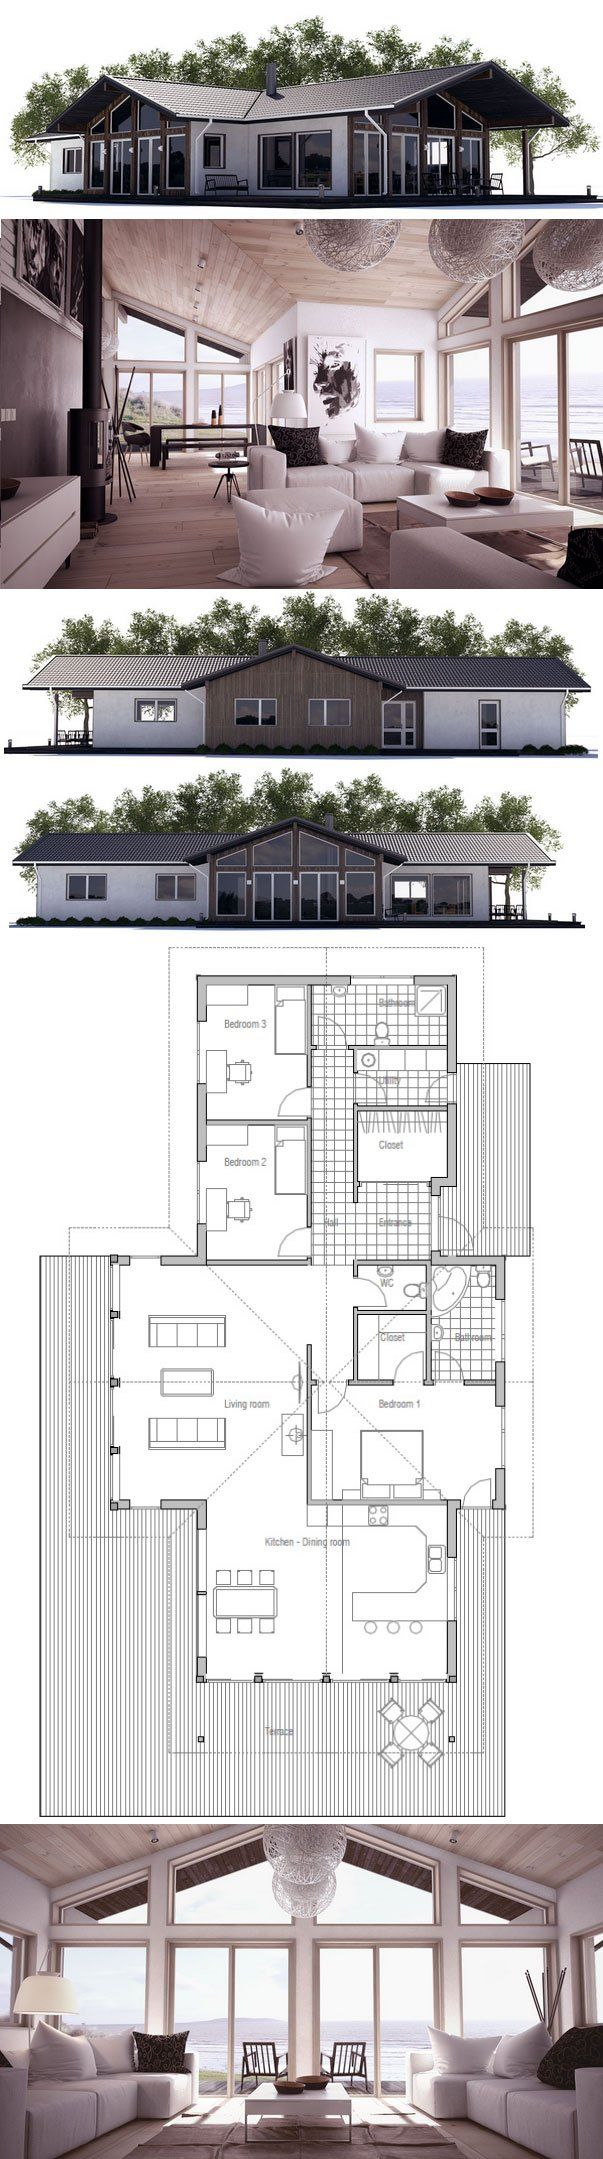 Modern House Ch85 Small House Plans House Plans House Layouts